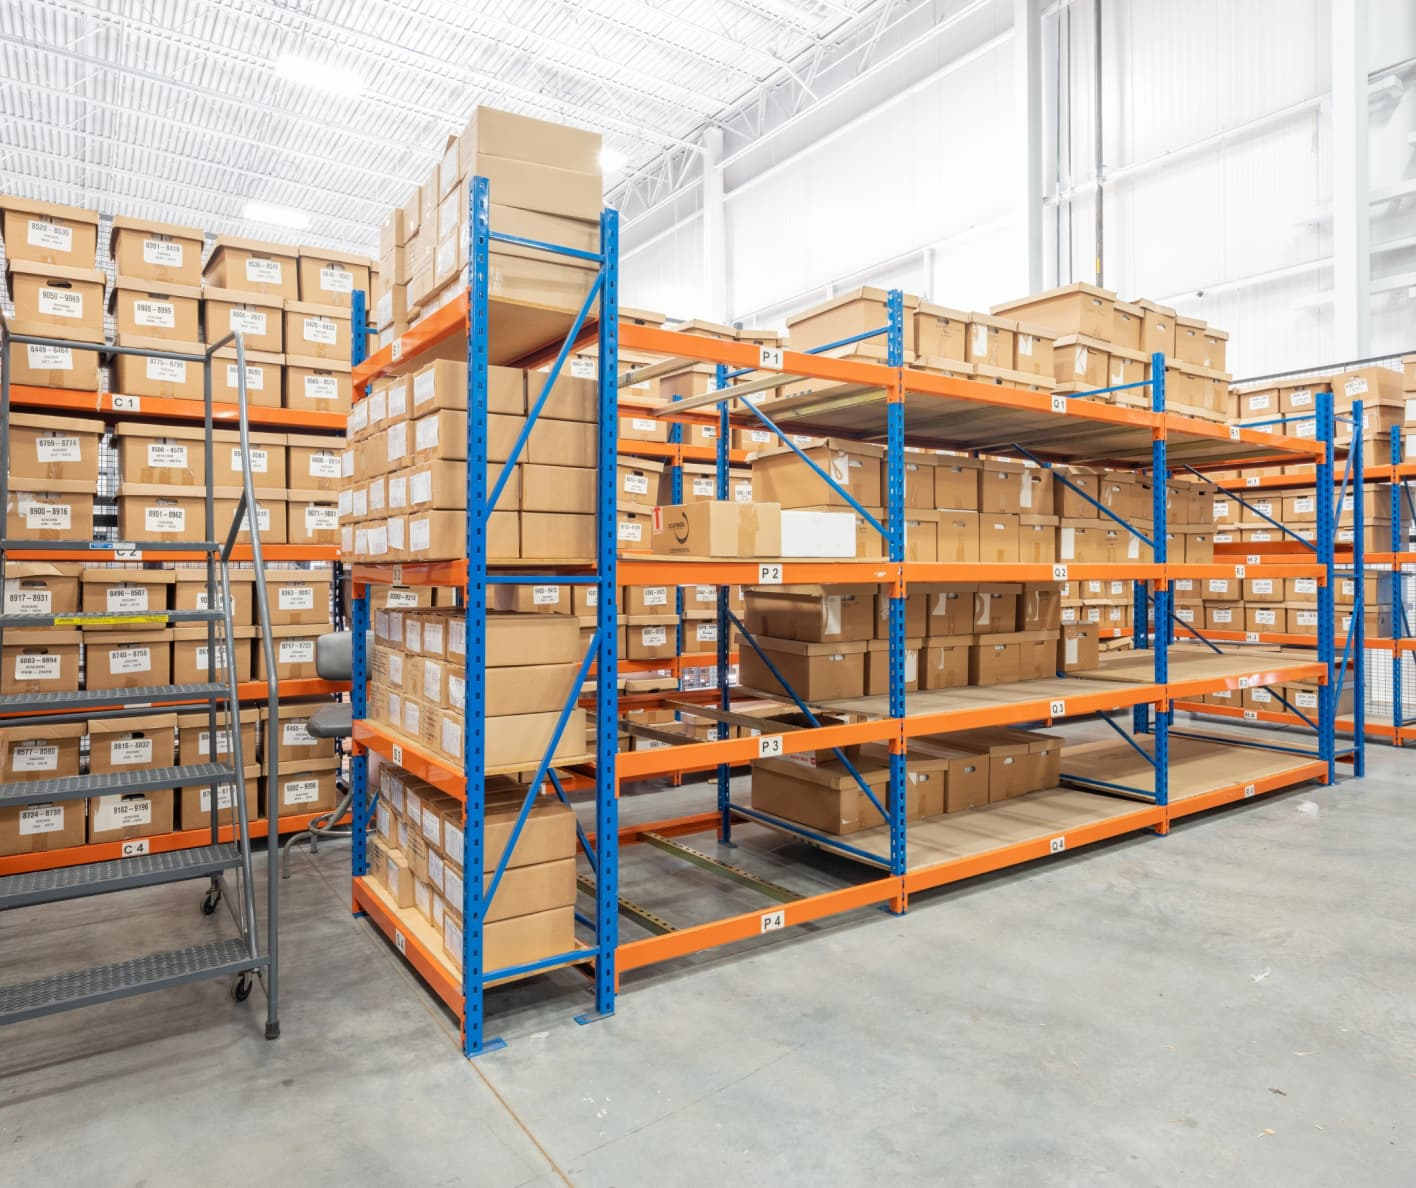 multipack warehouse boxes